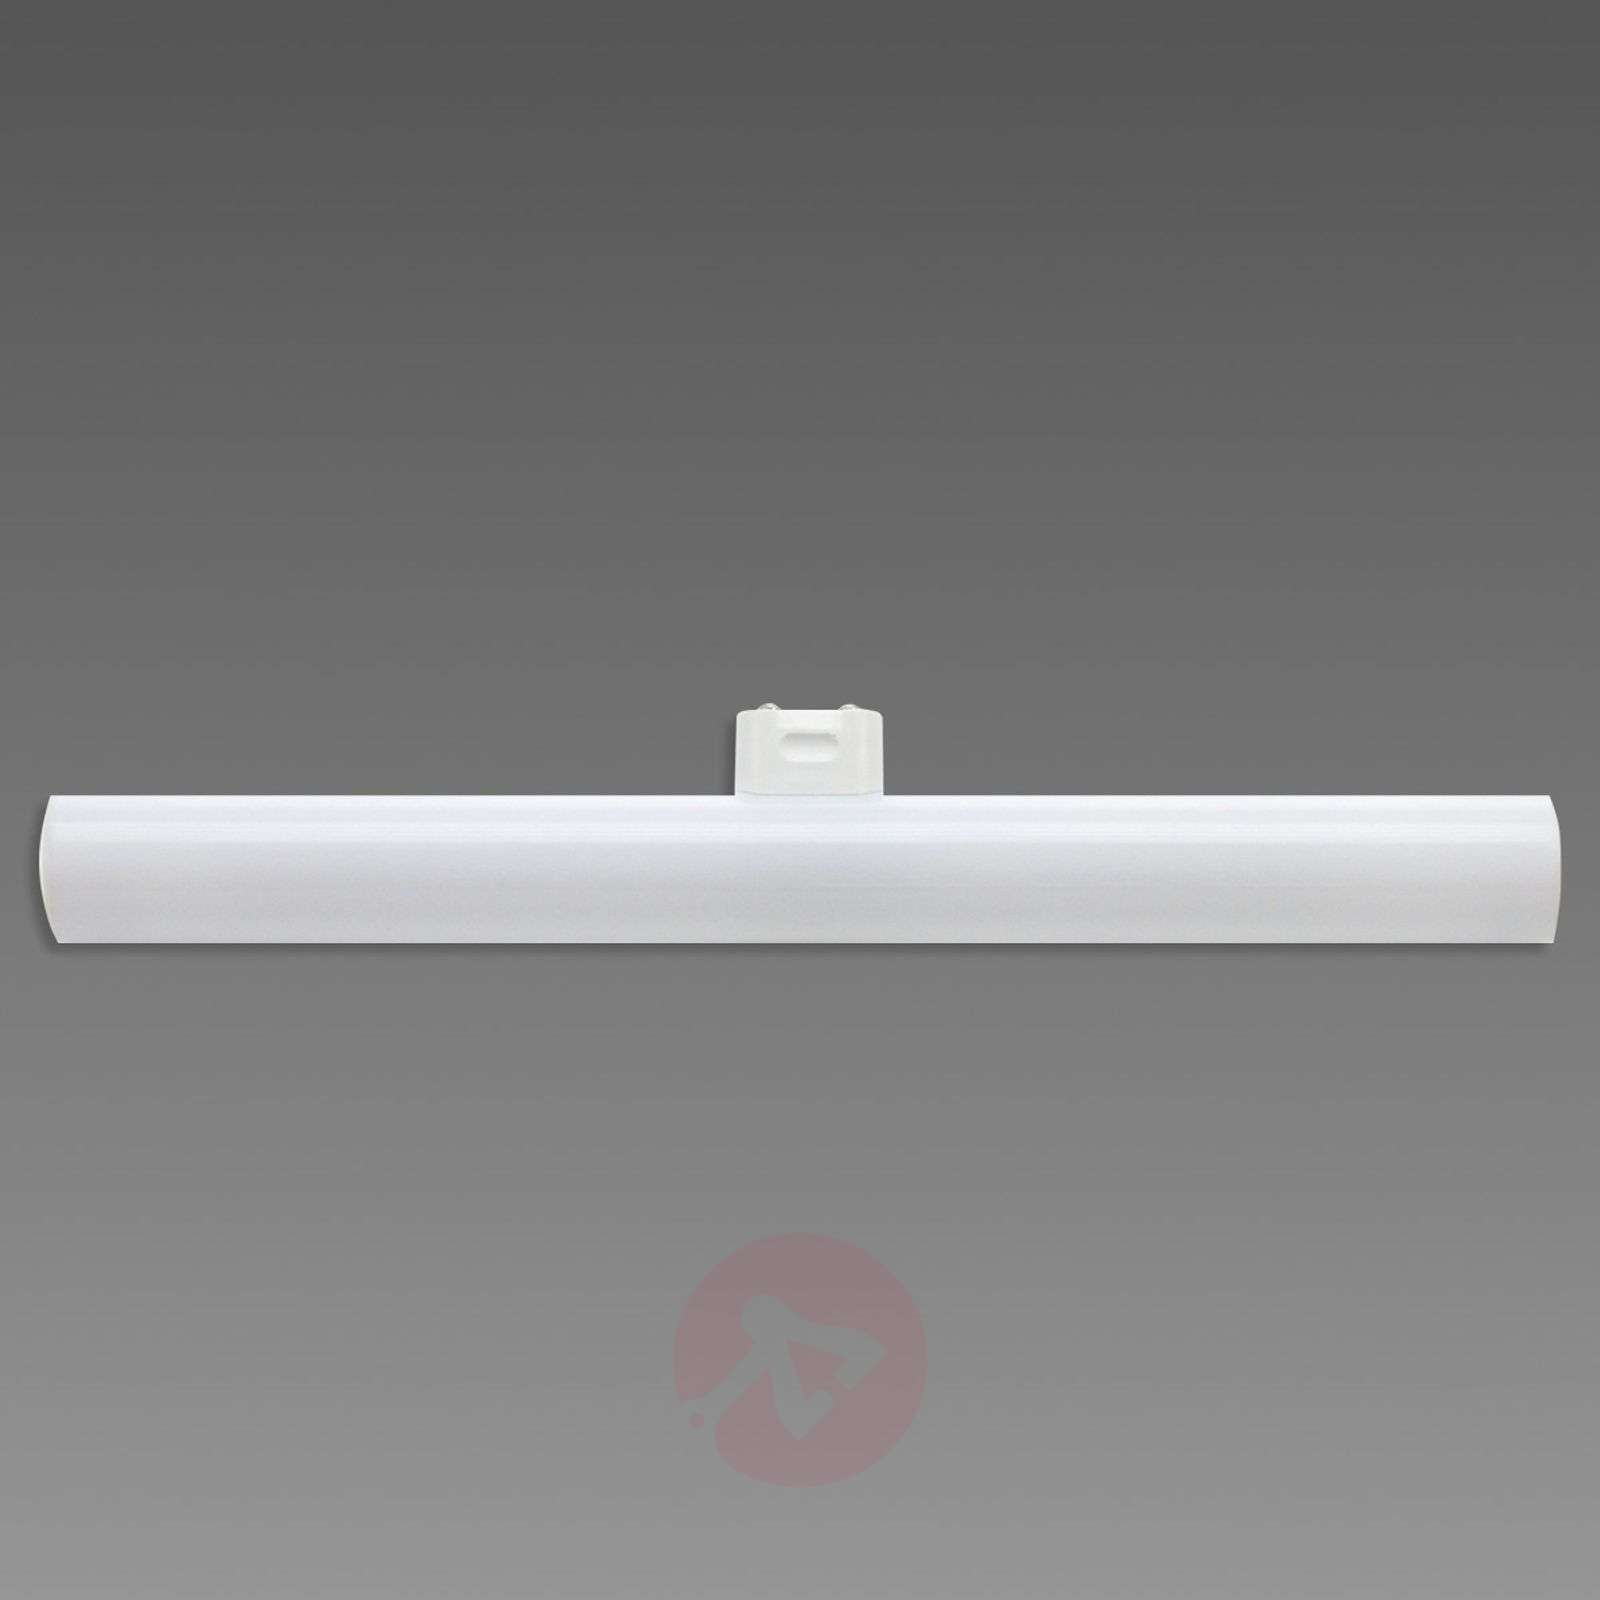 S14d 6W 827 tubo LED 1 casquillo 300mm-9506025-01